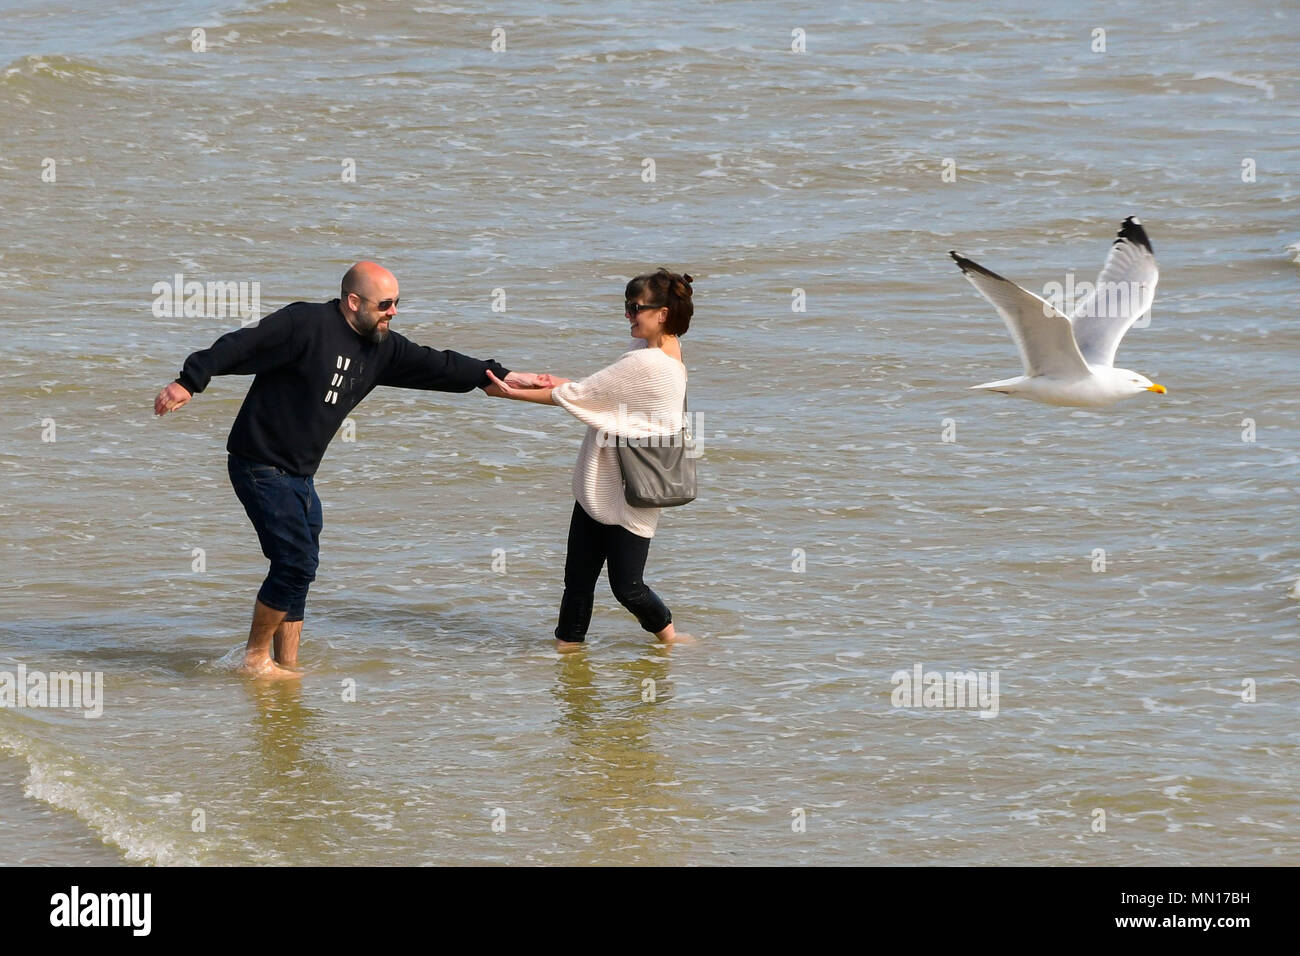 Brighton, West Sussex, UK.  13th May 2018. UK Weather.  A couple standing in the sea at the beach enjoying the warm afternoon sunshine at Brighton in West Sussex.  Picture Credit: Graham Hunt/Alamy Live News - Stock Image